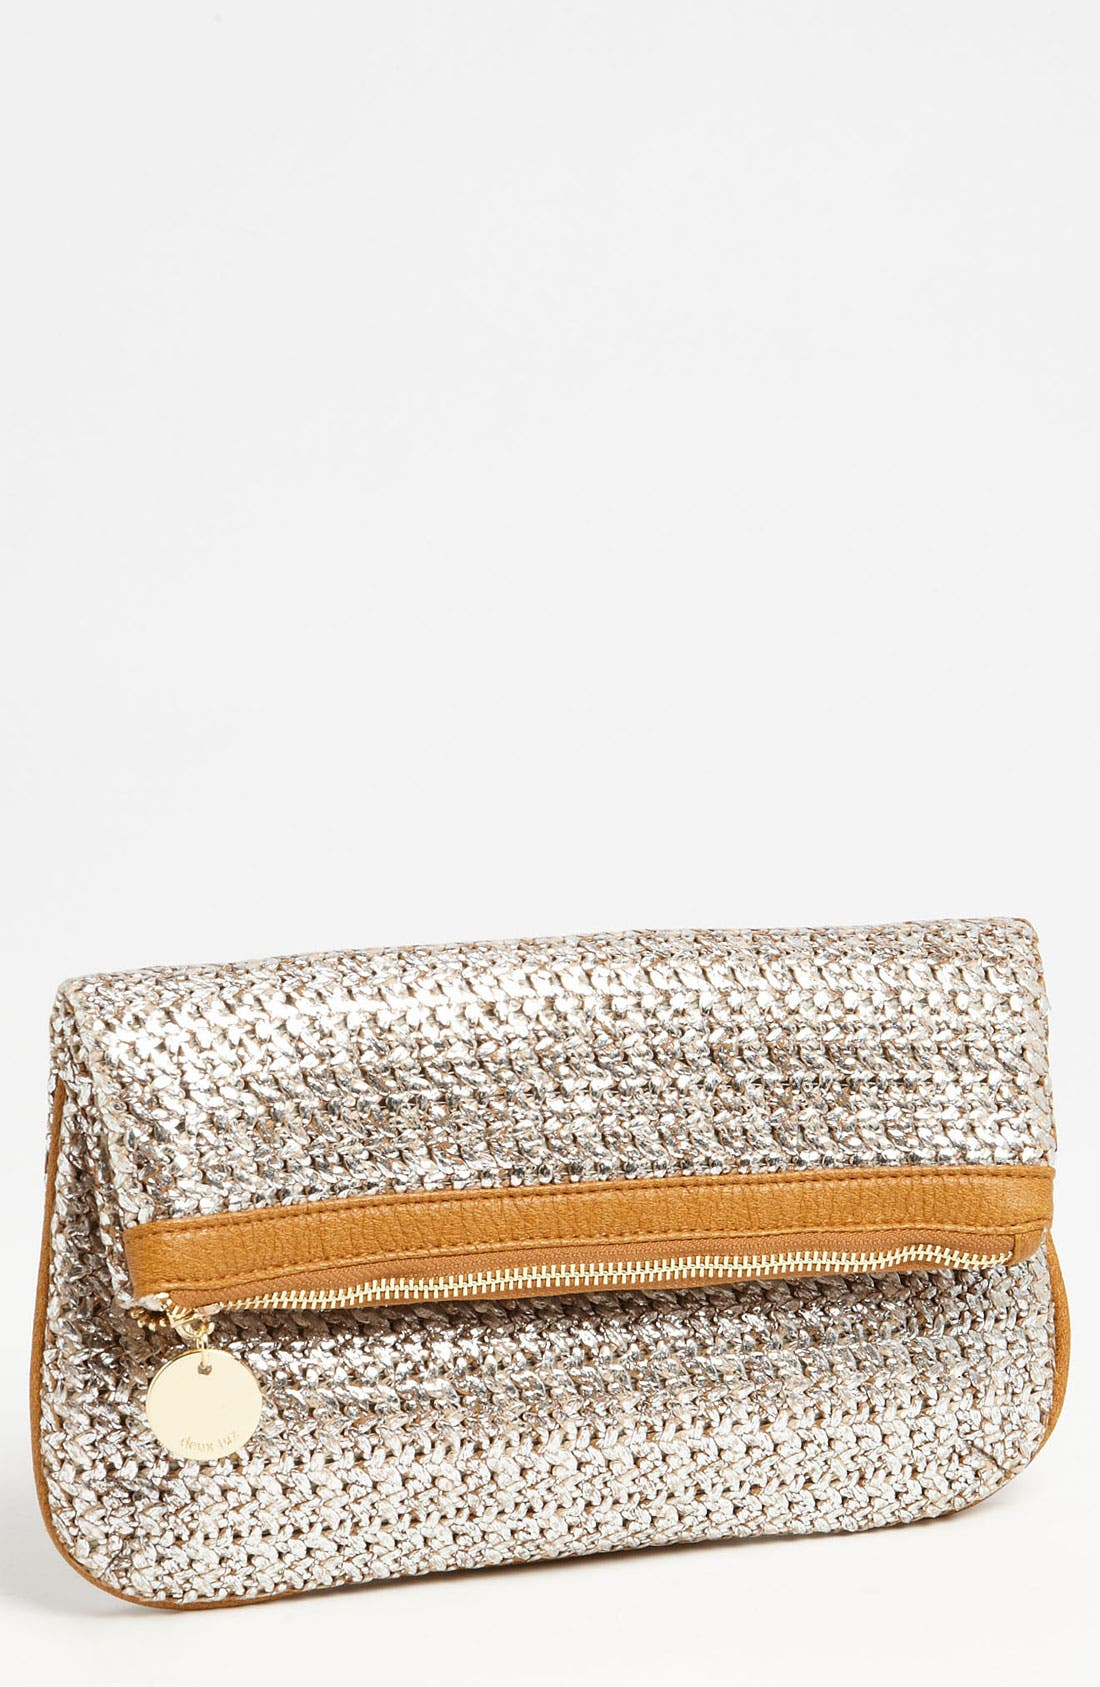 Main Image - Deux Lux 'Biscayne' Foldover Clutch